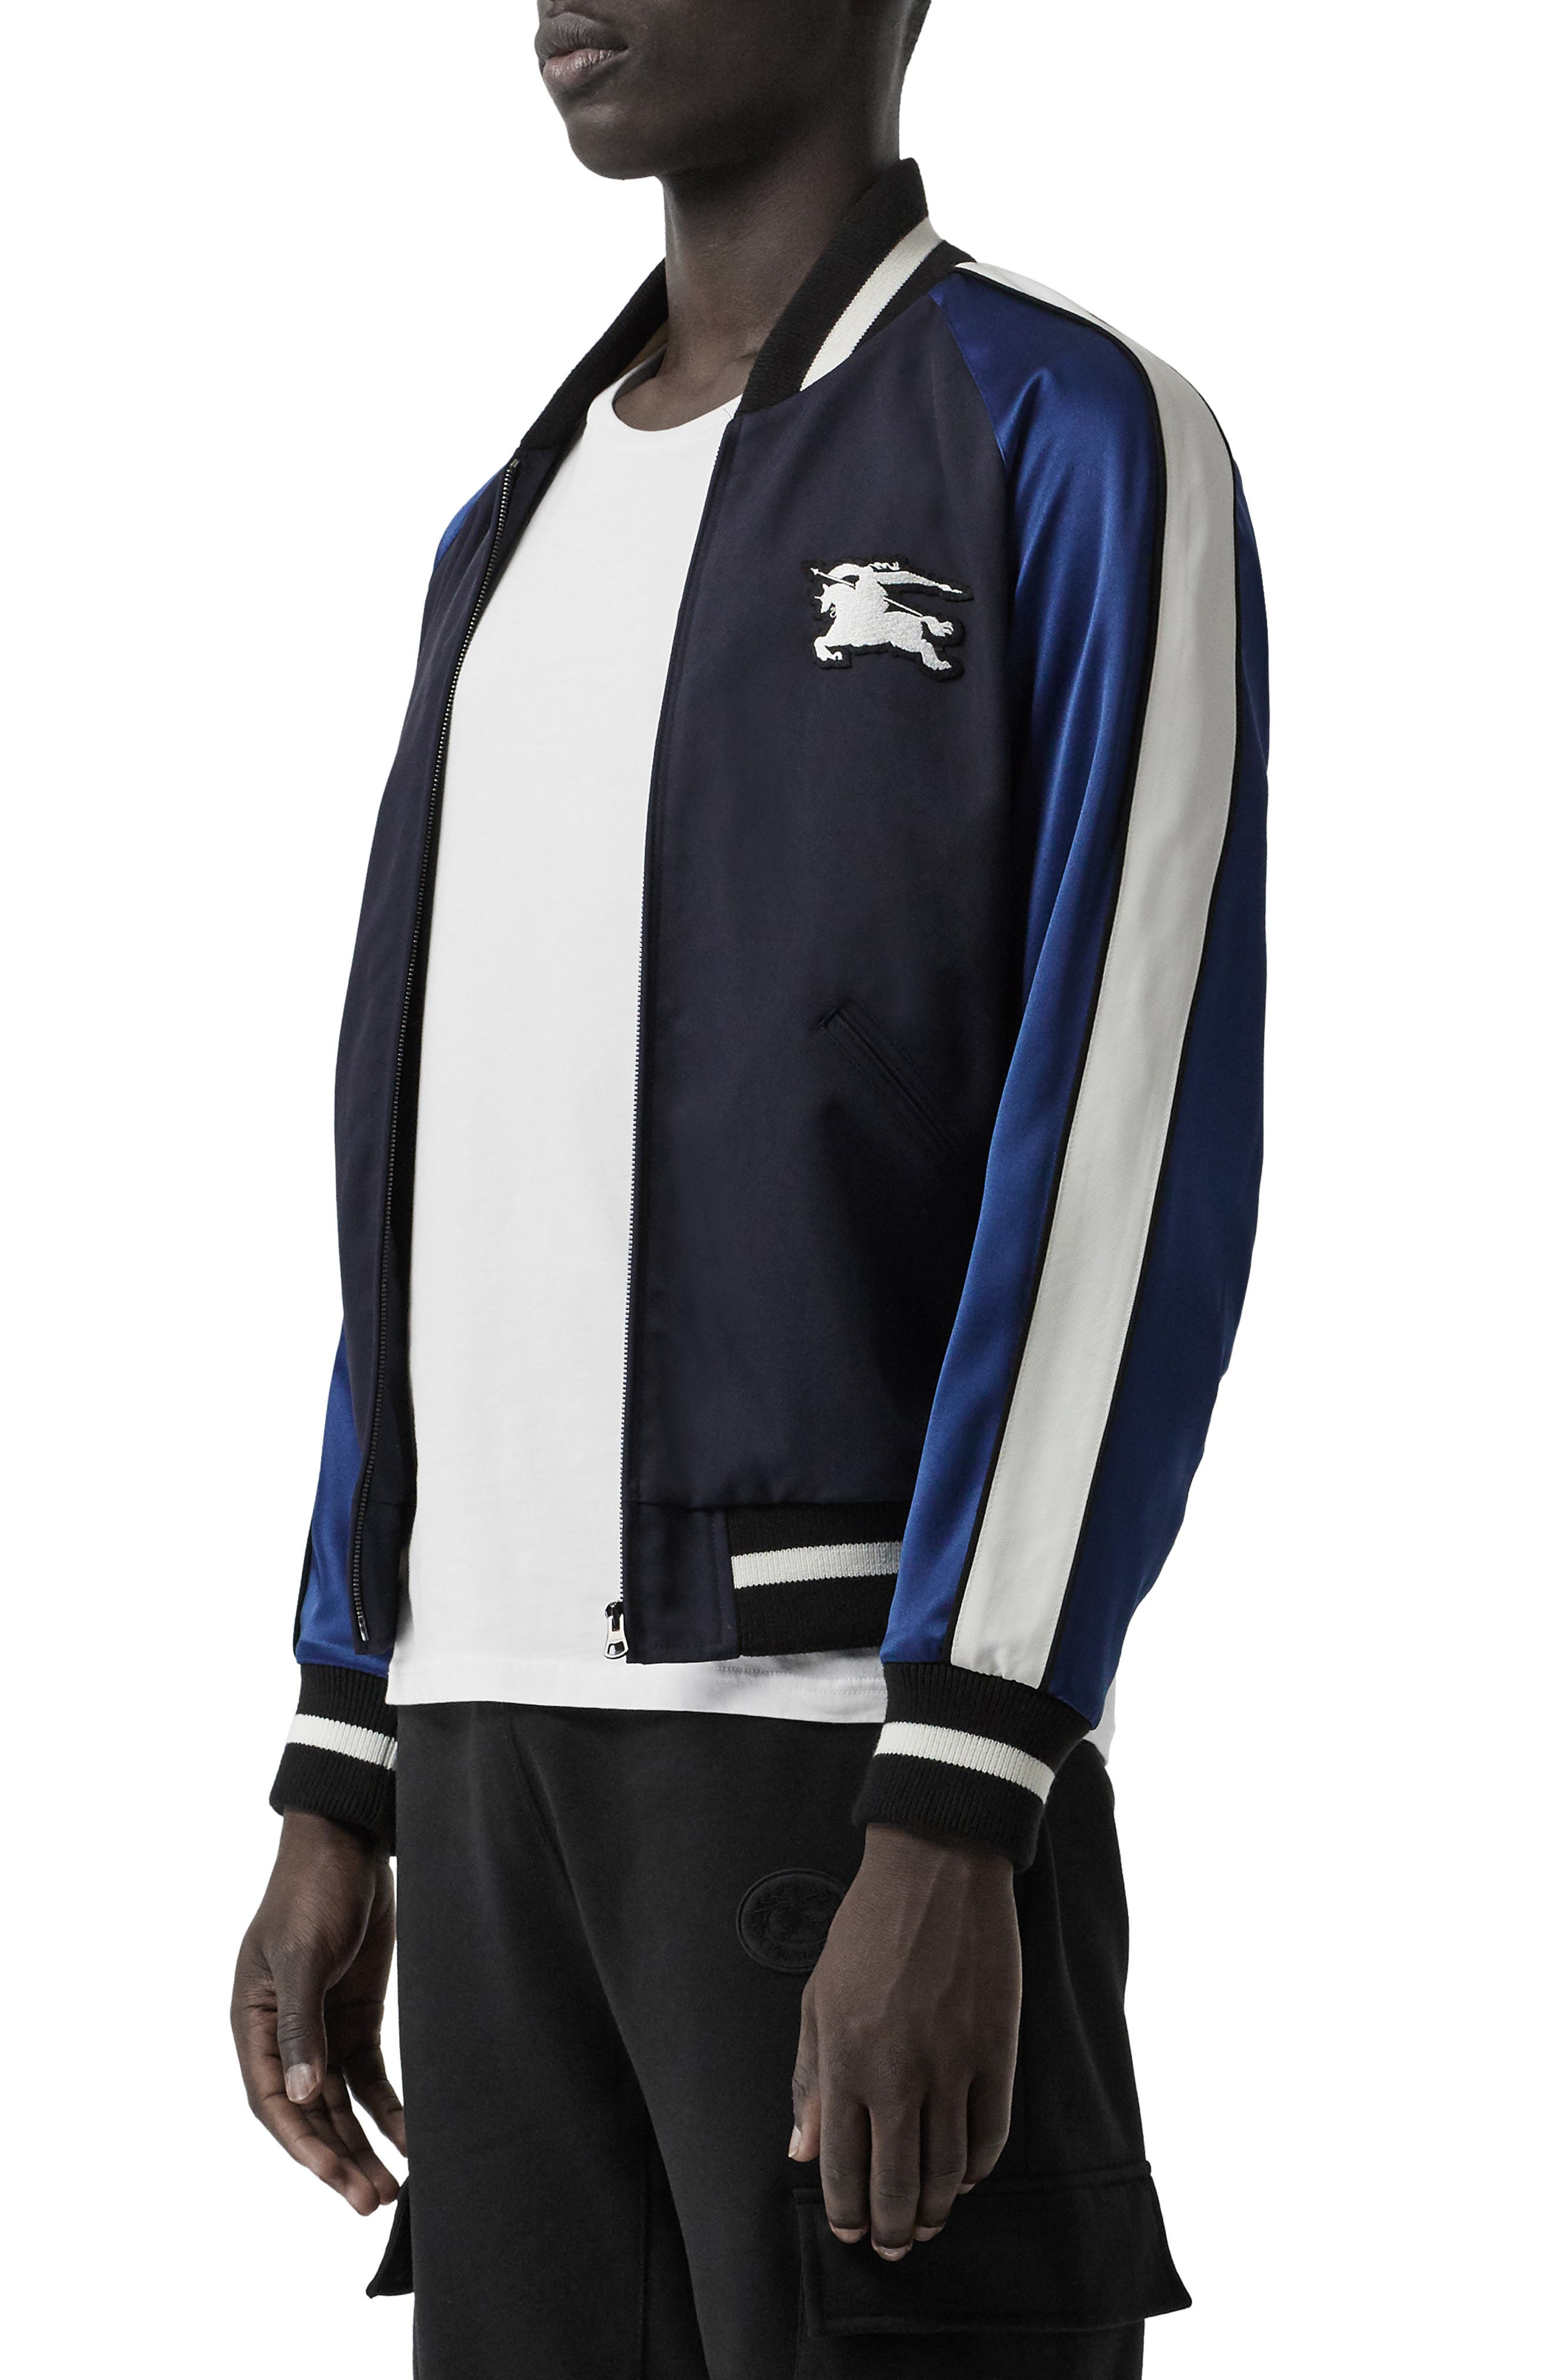 BURBERRY, Thornberry Zip Track Jacket, Alternate thumbnail 3, color, NAVY